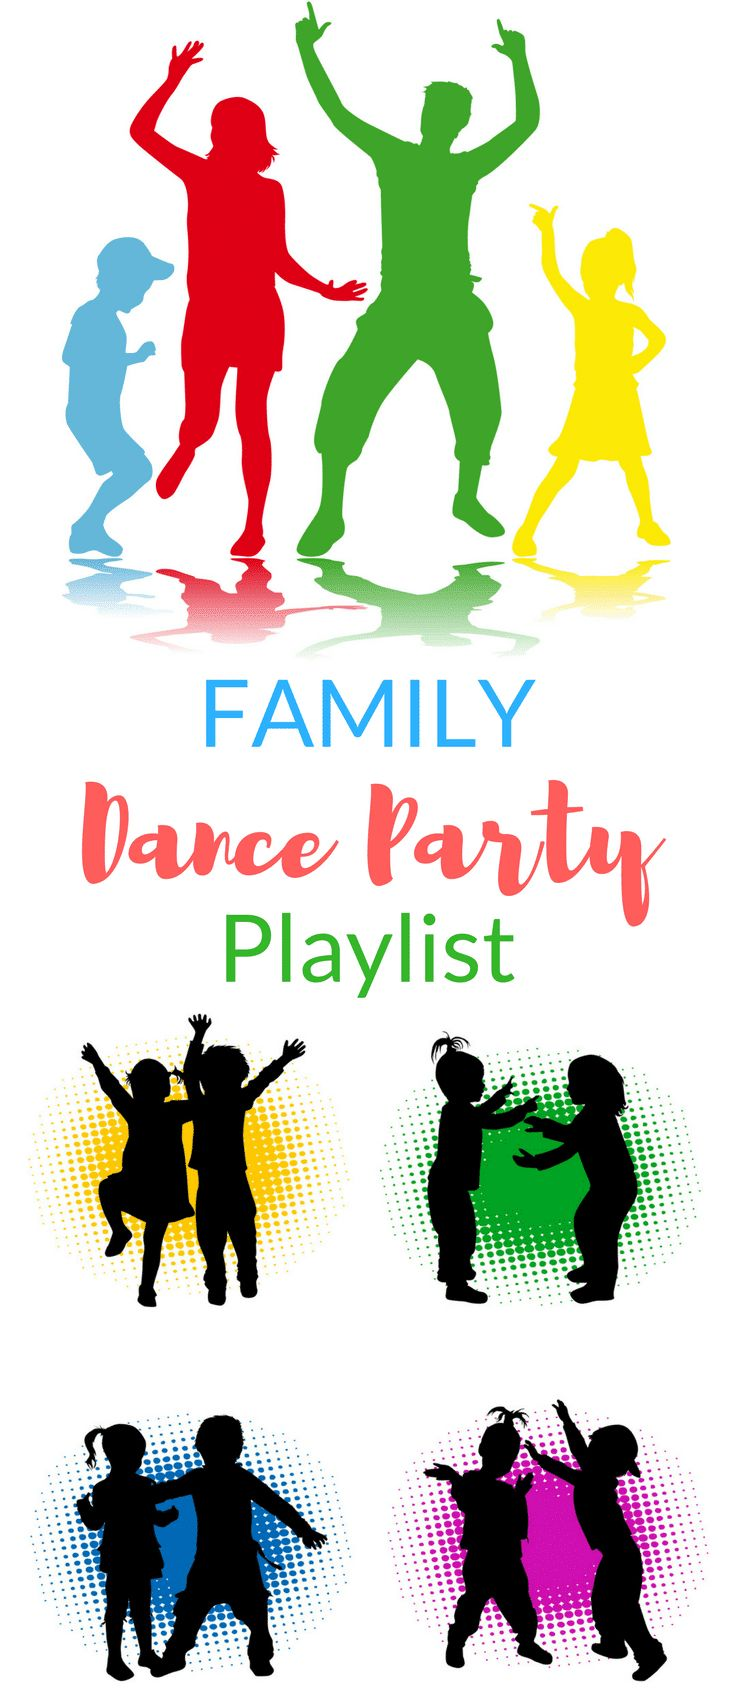 Family Dance Party Playlist Dance party kids, Party